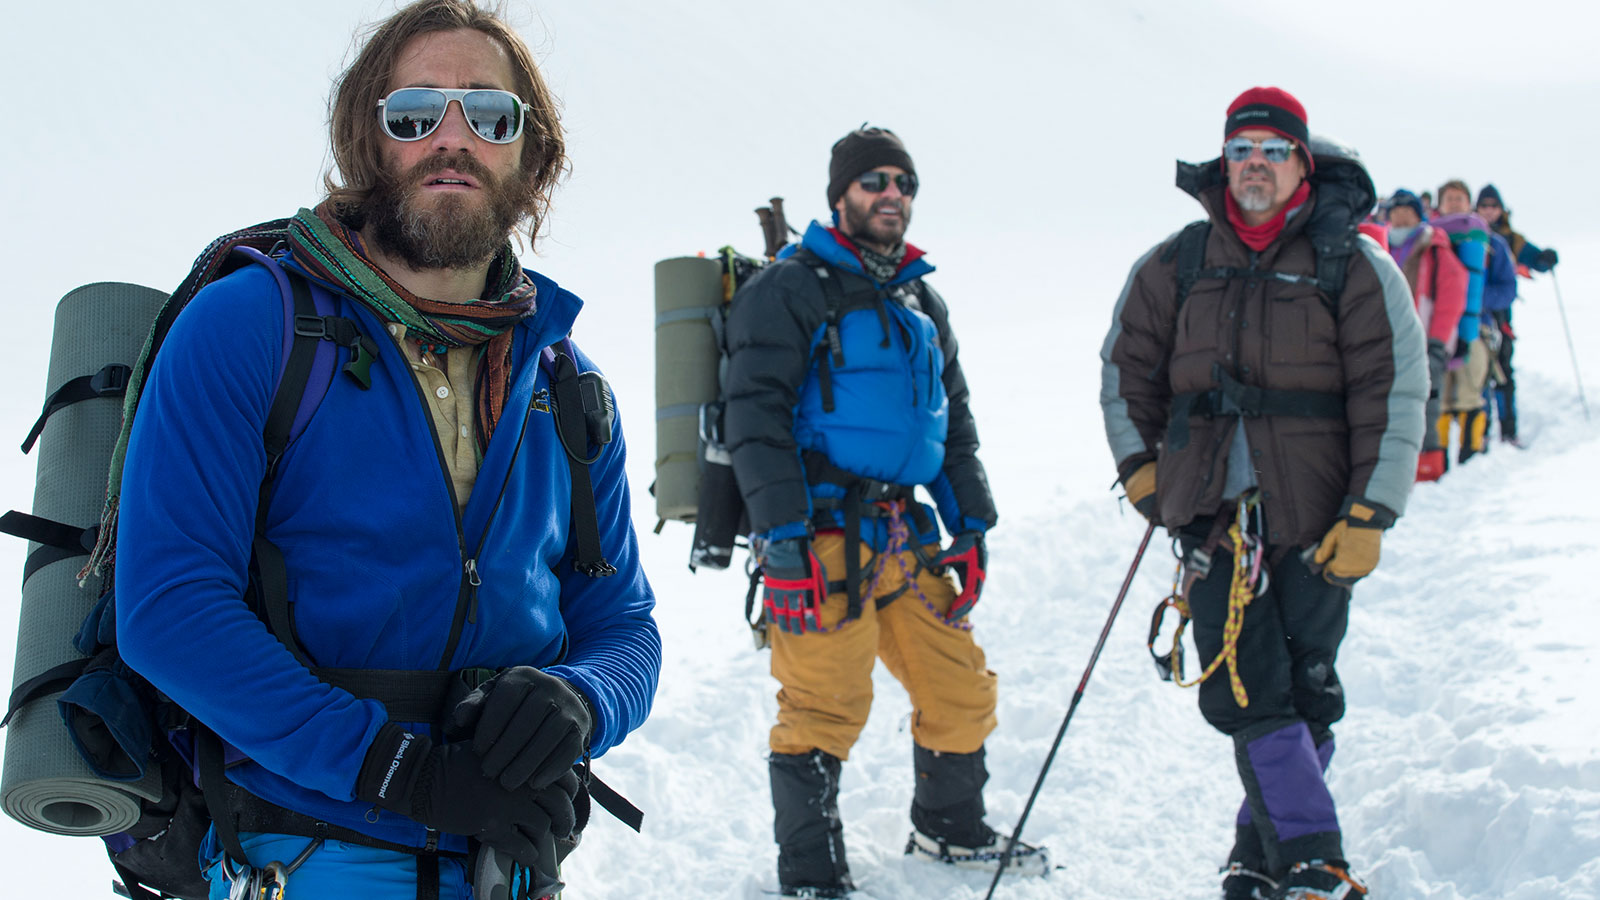 Jake Gyllenhaal, Josh Brolin, and Martin Henderson are among the many talented cast members of  Everest  - image via  Google .